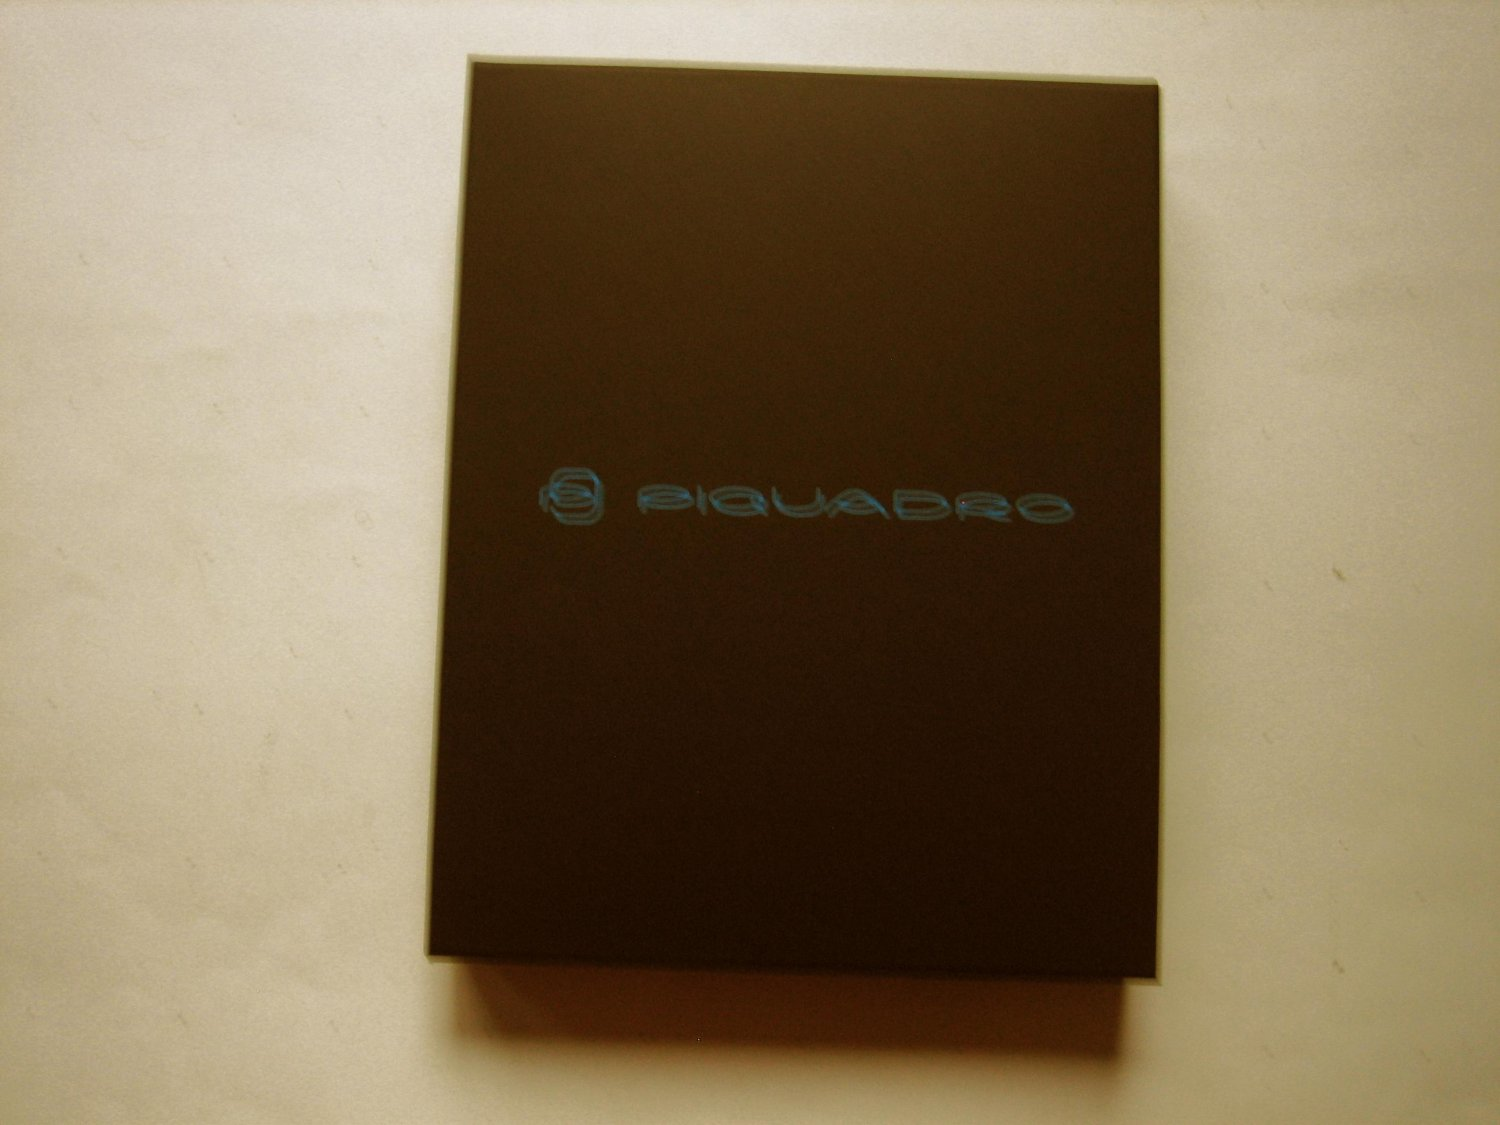 New Piquadro iPad Air Leather Case With Shoulder Strap Gray/Taupe